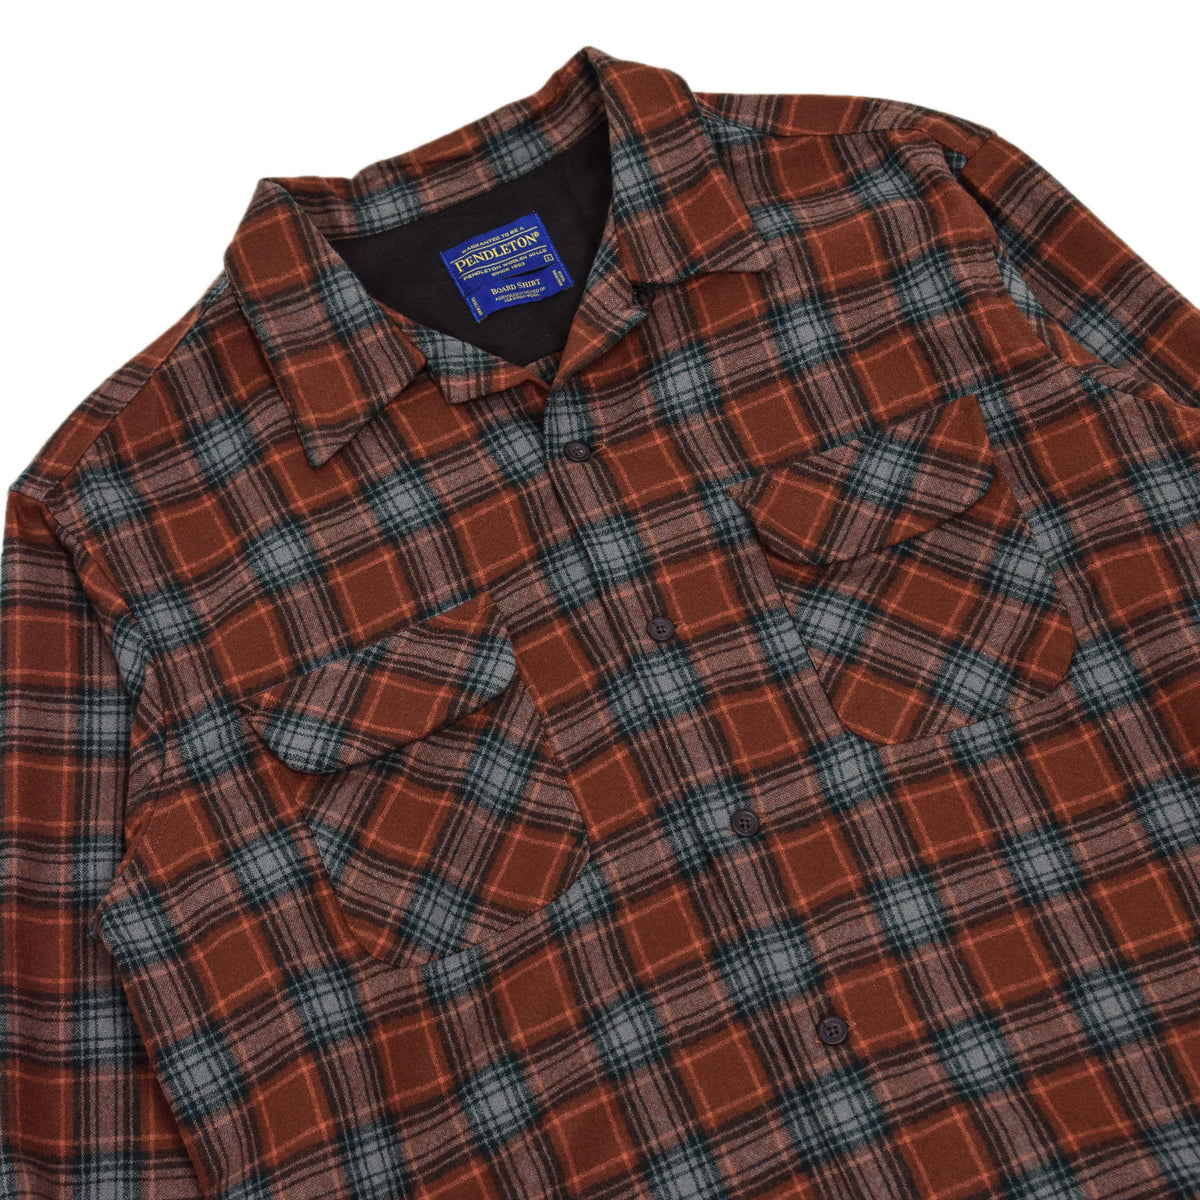 Pendleton Plaid Long Sleeve Virgin Wool Check Board Shirt L CHEST